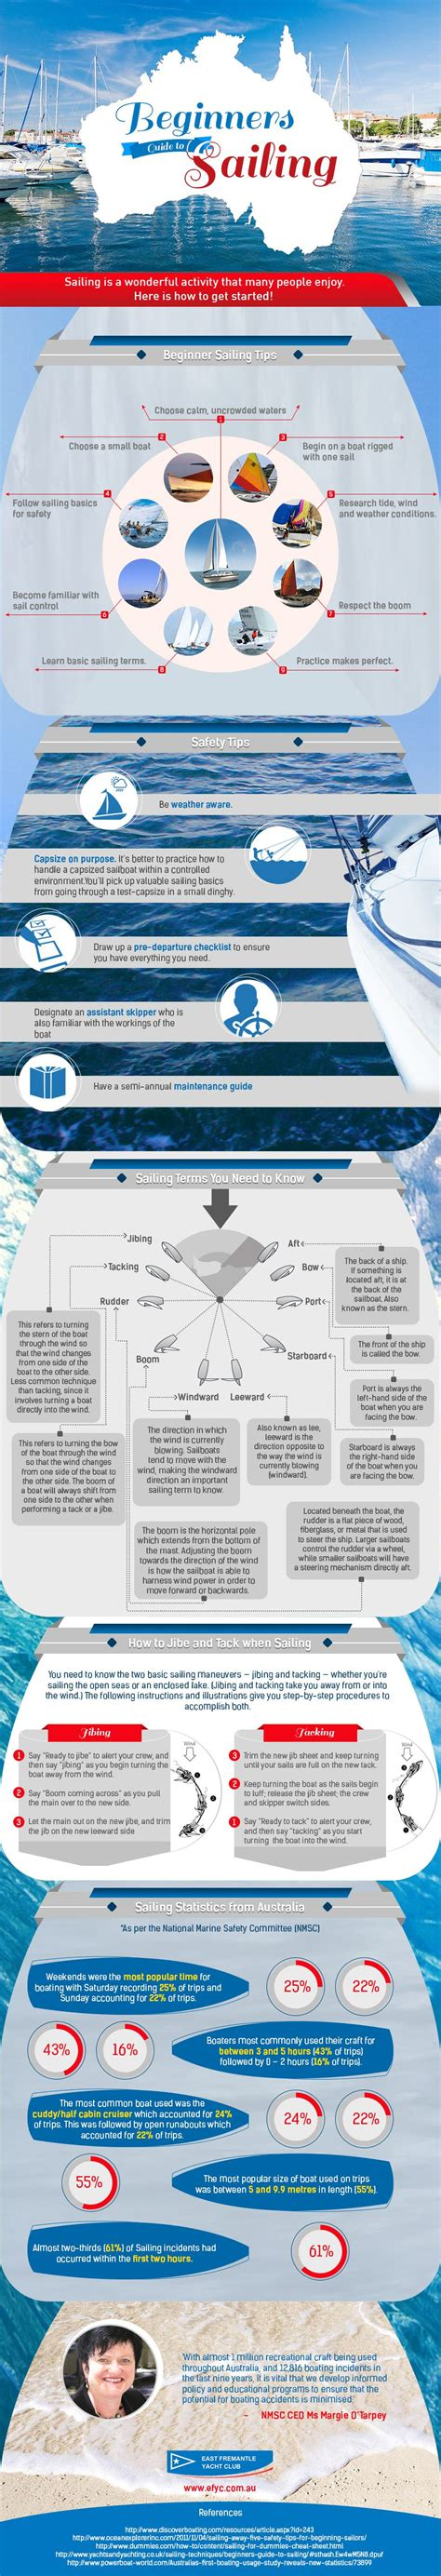 boat terms for dummies beginners guide to sailing infographic latest